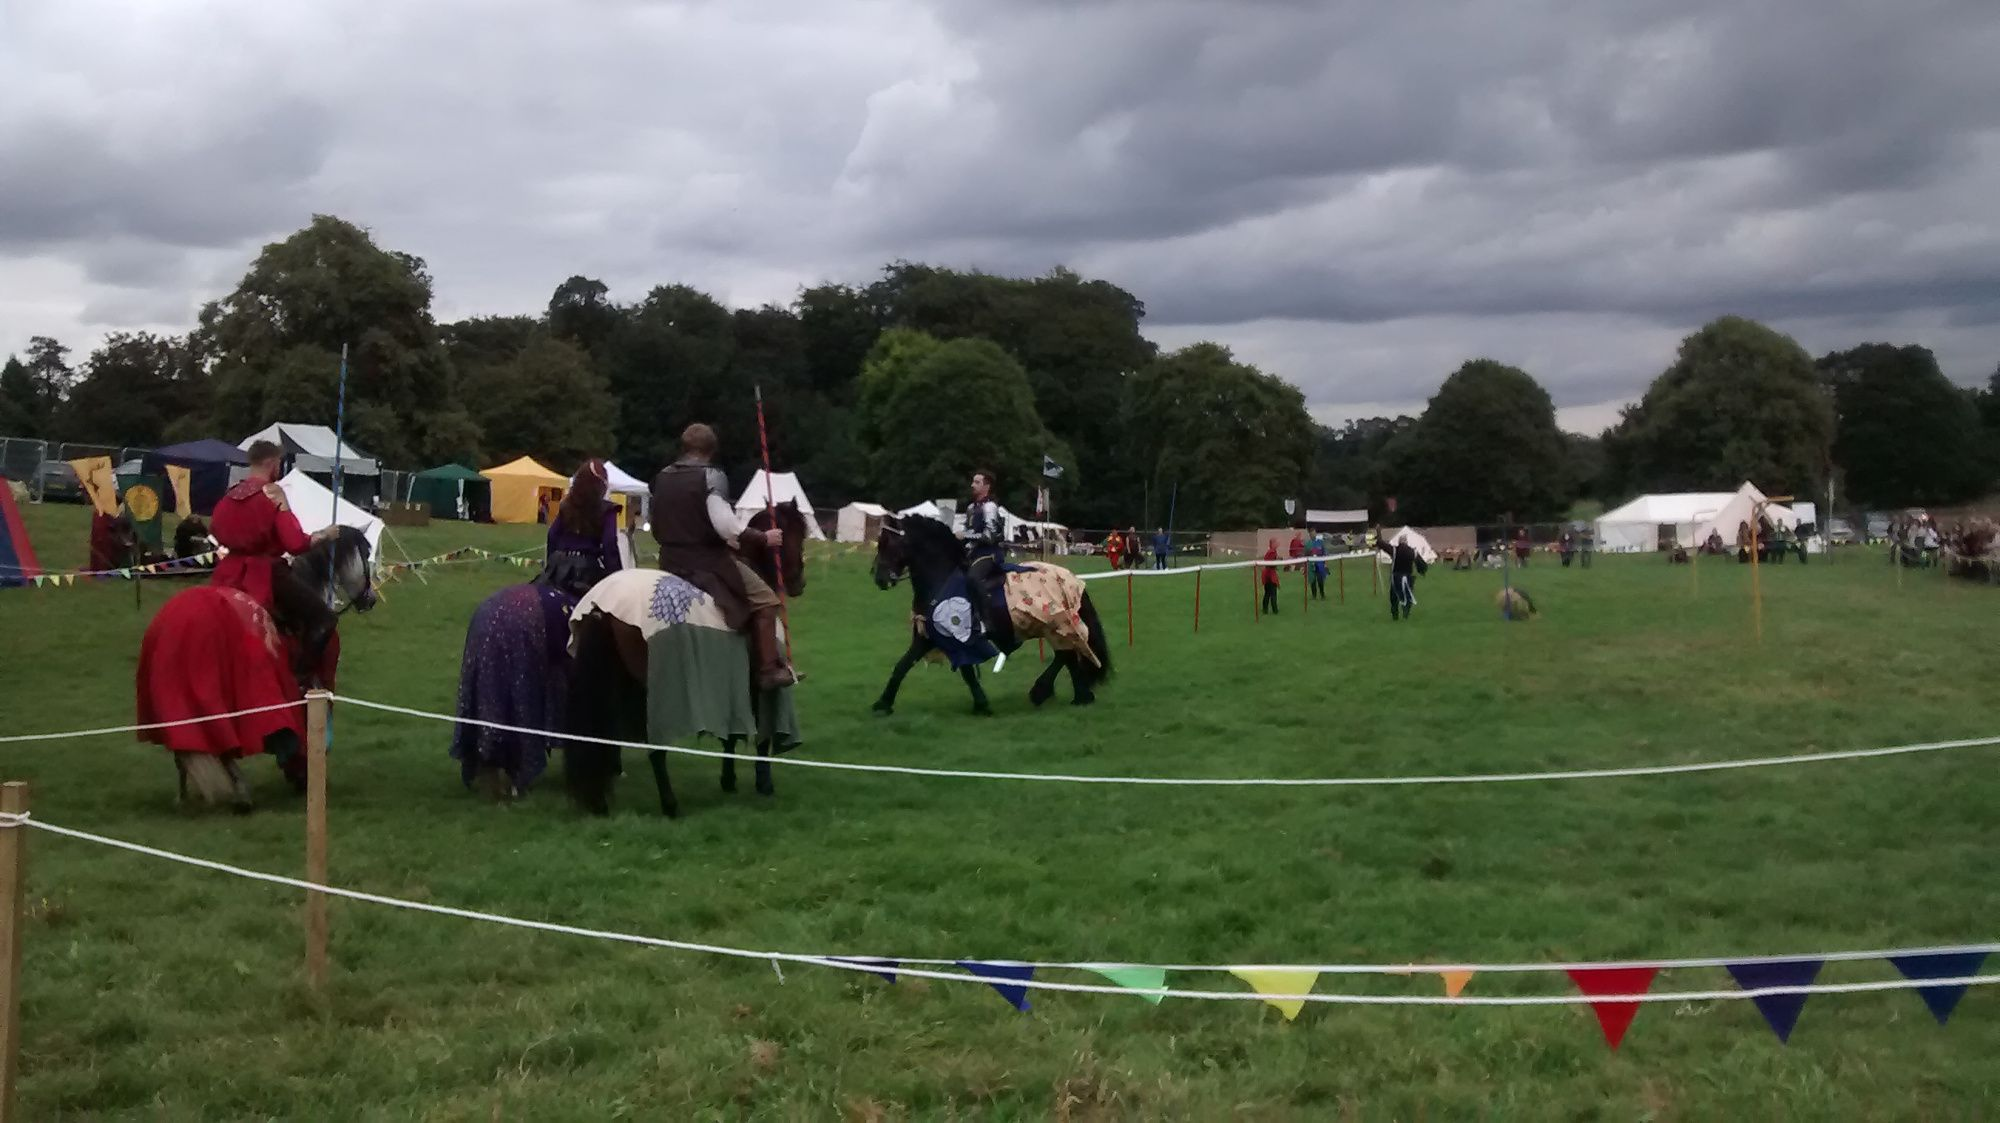 More from the joust at GoTFest